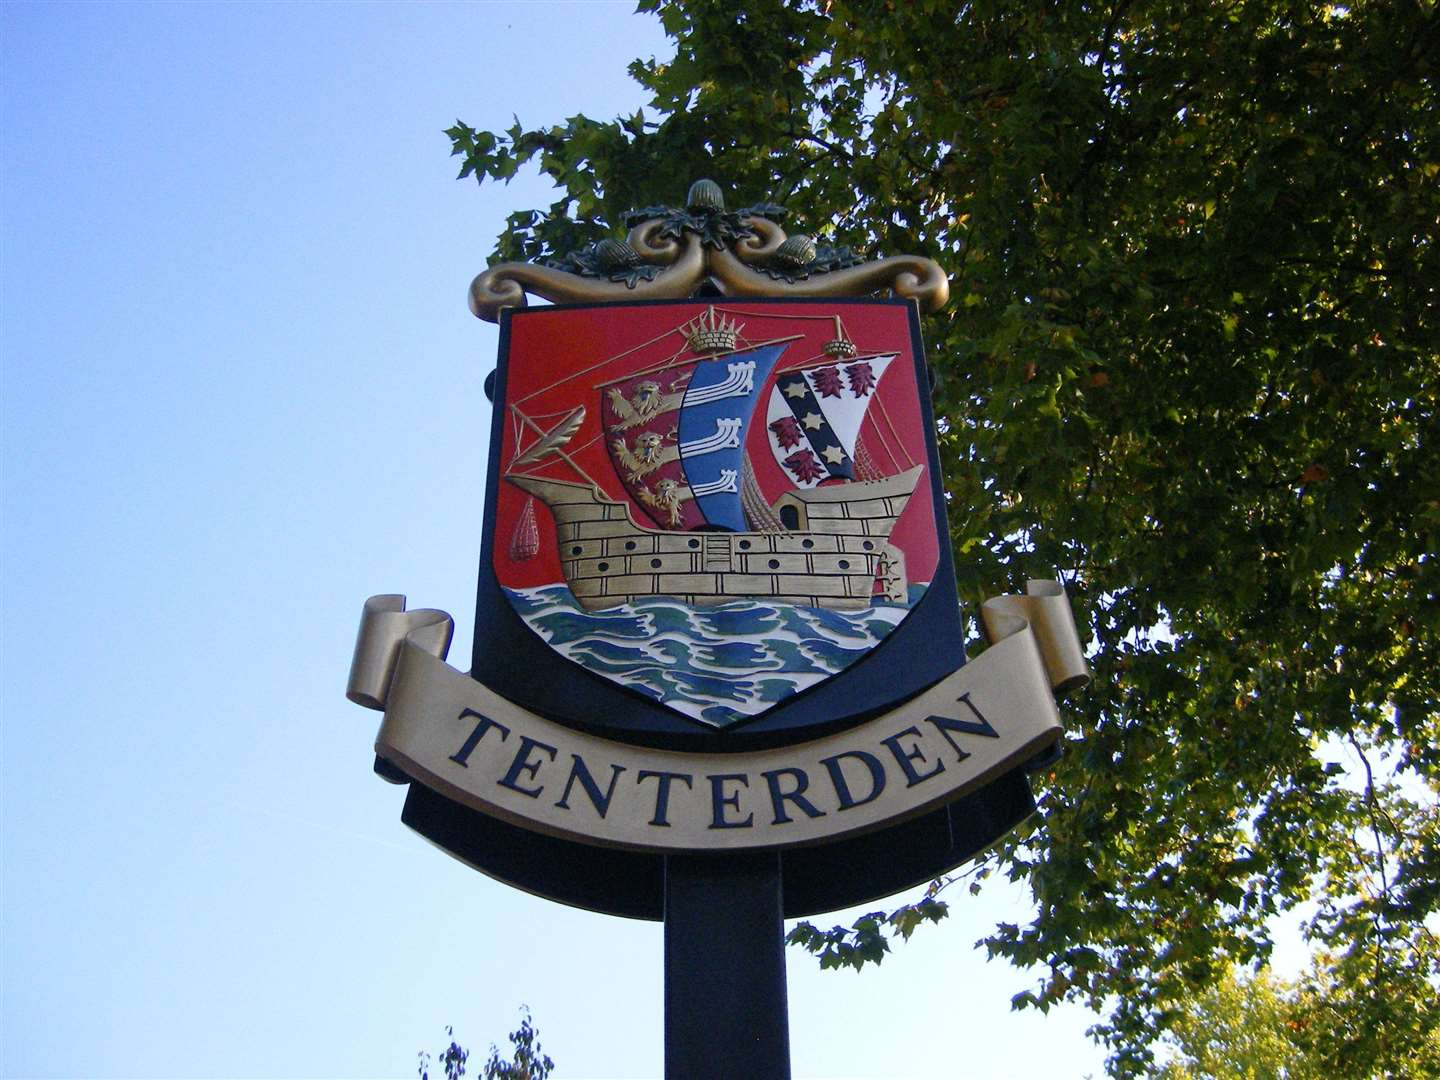 The family live in Tenterden